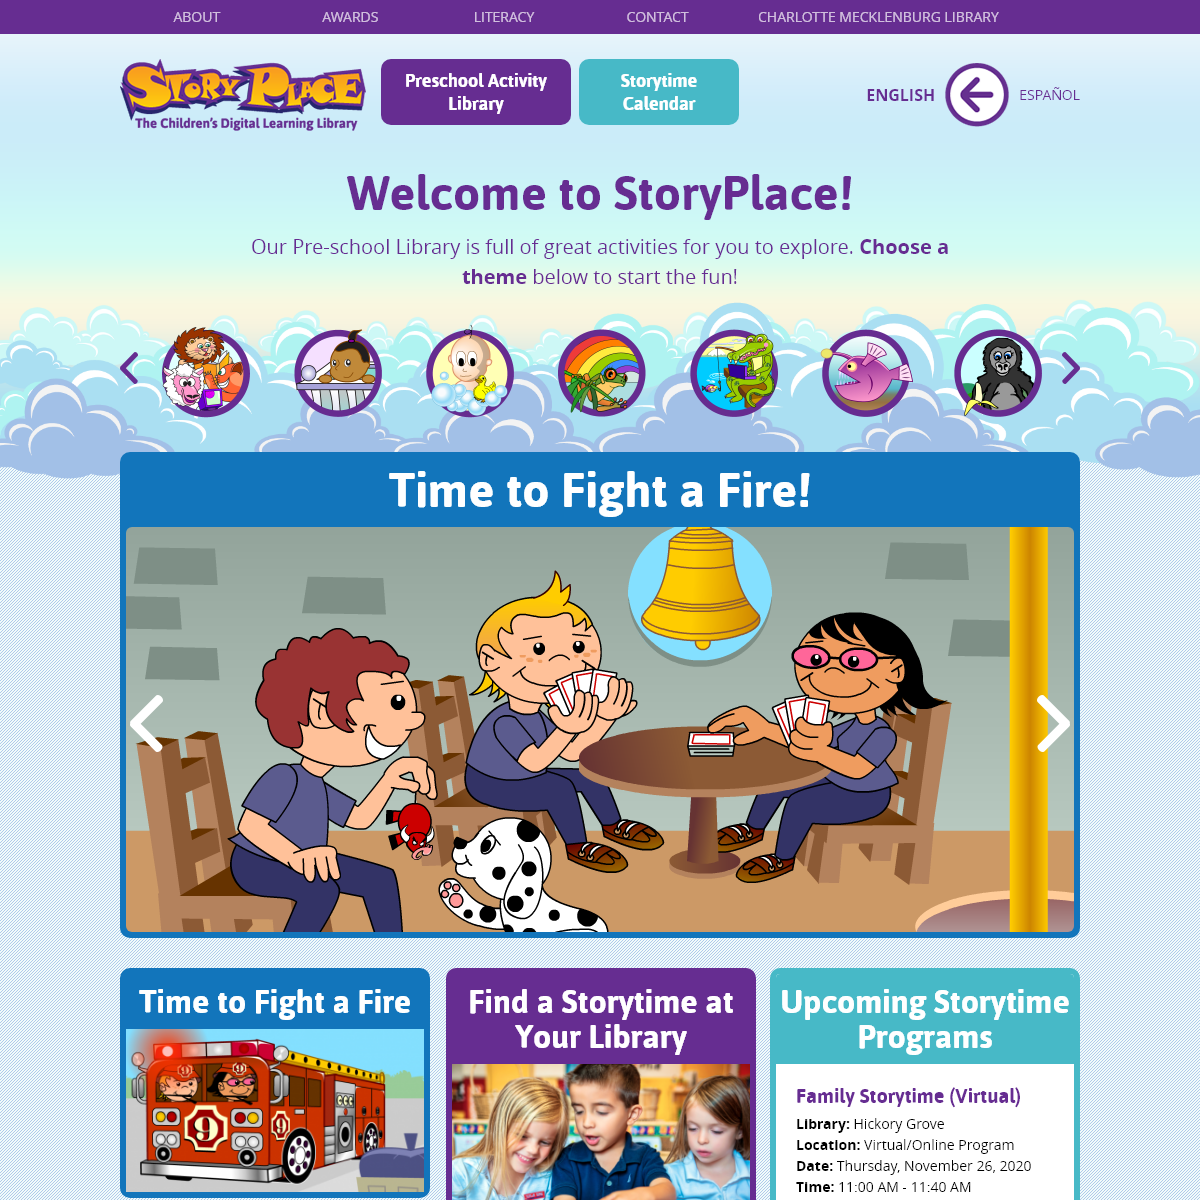 Welcome to StoryPlace! - StoryPlace